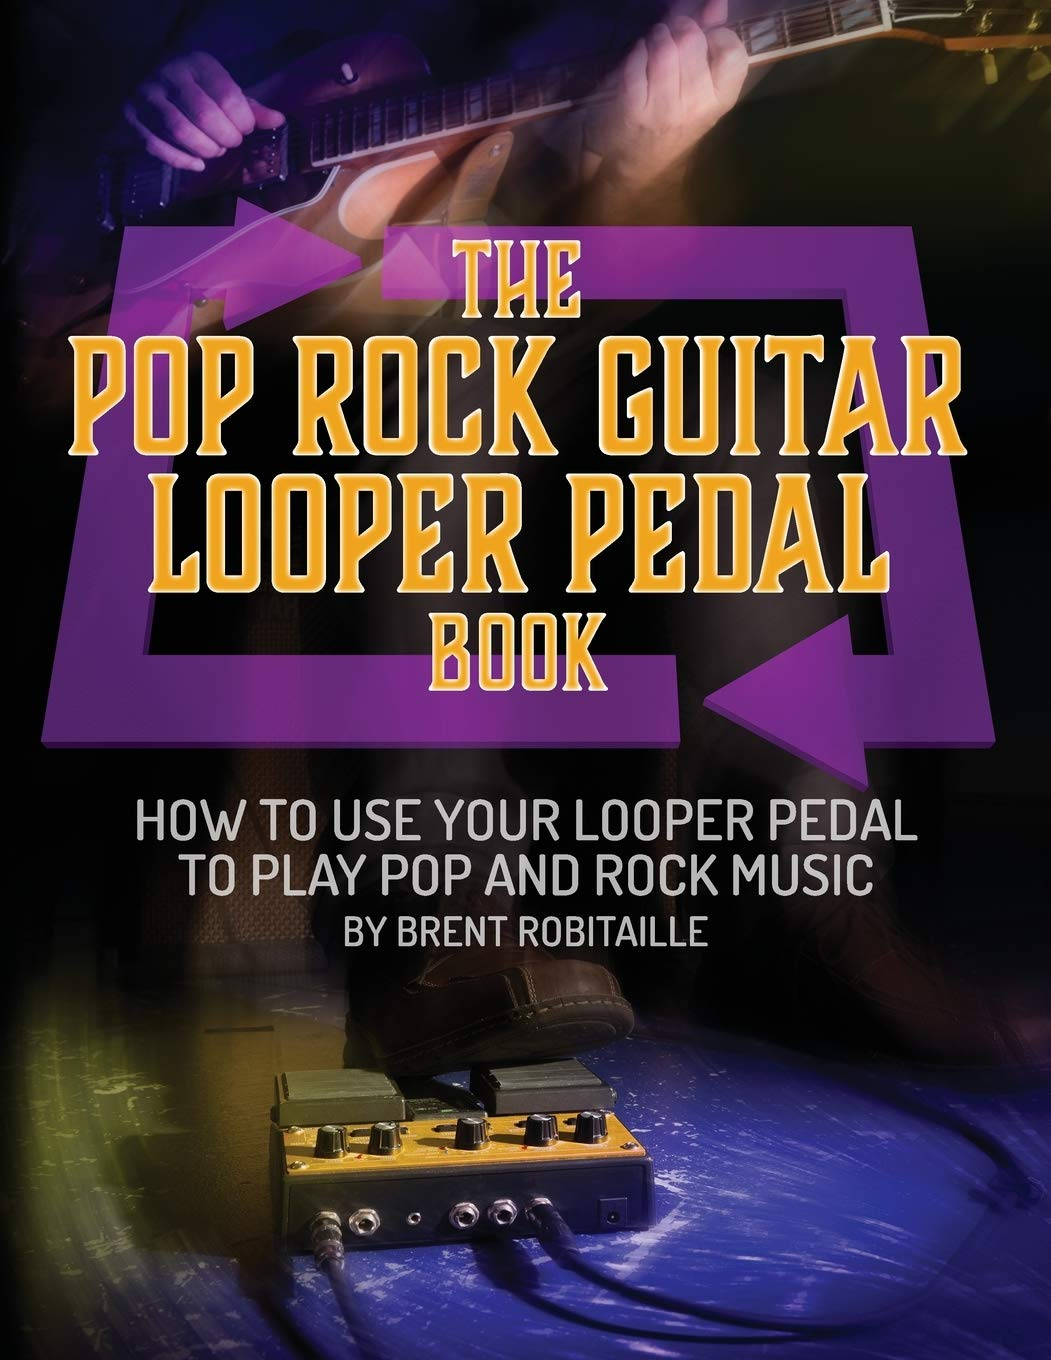 The Pop Rock Guitar Looper Pedal Book: How to Use Your Guitar ...